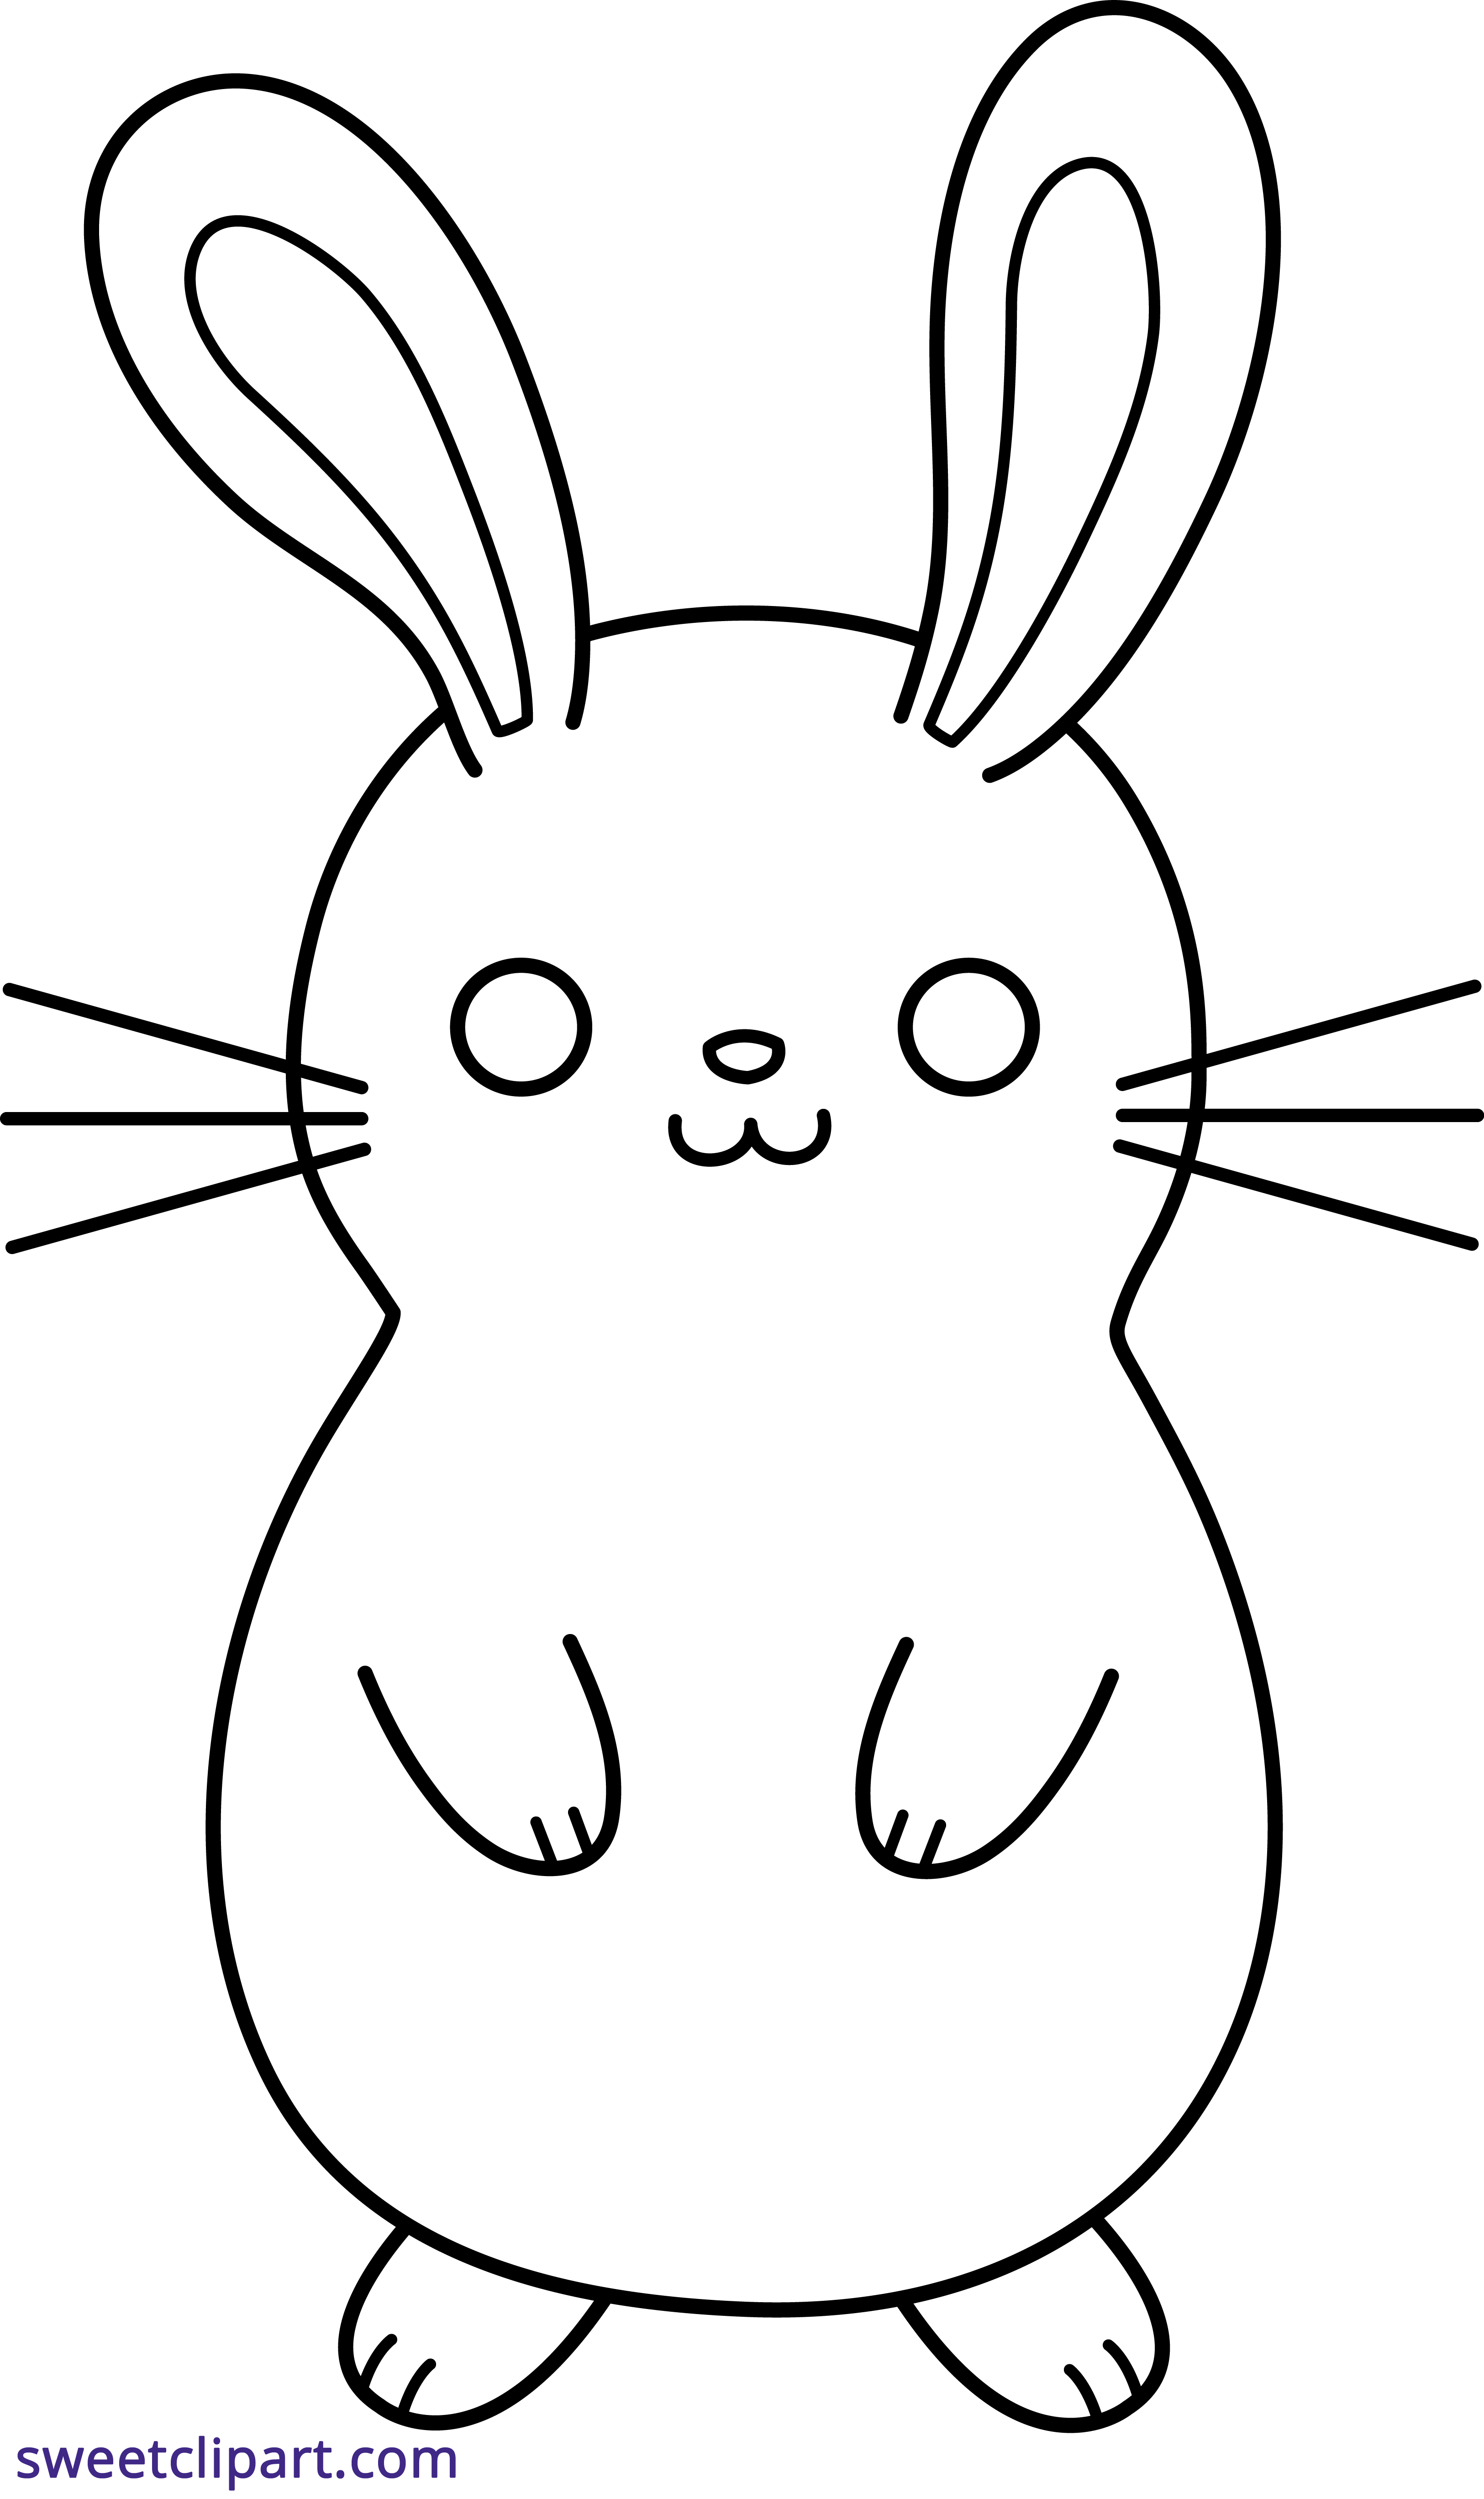 stock Bunny Rabbit Cute Lineart Black White Clipart